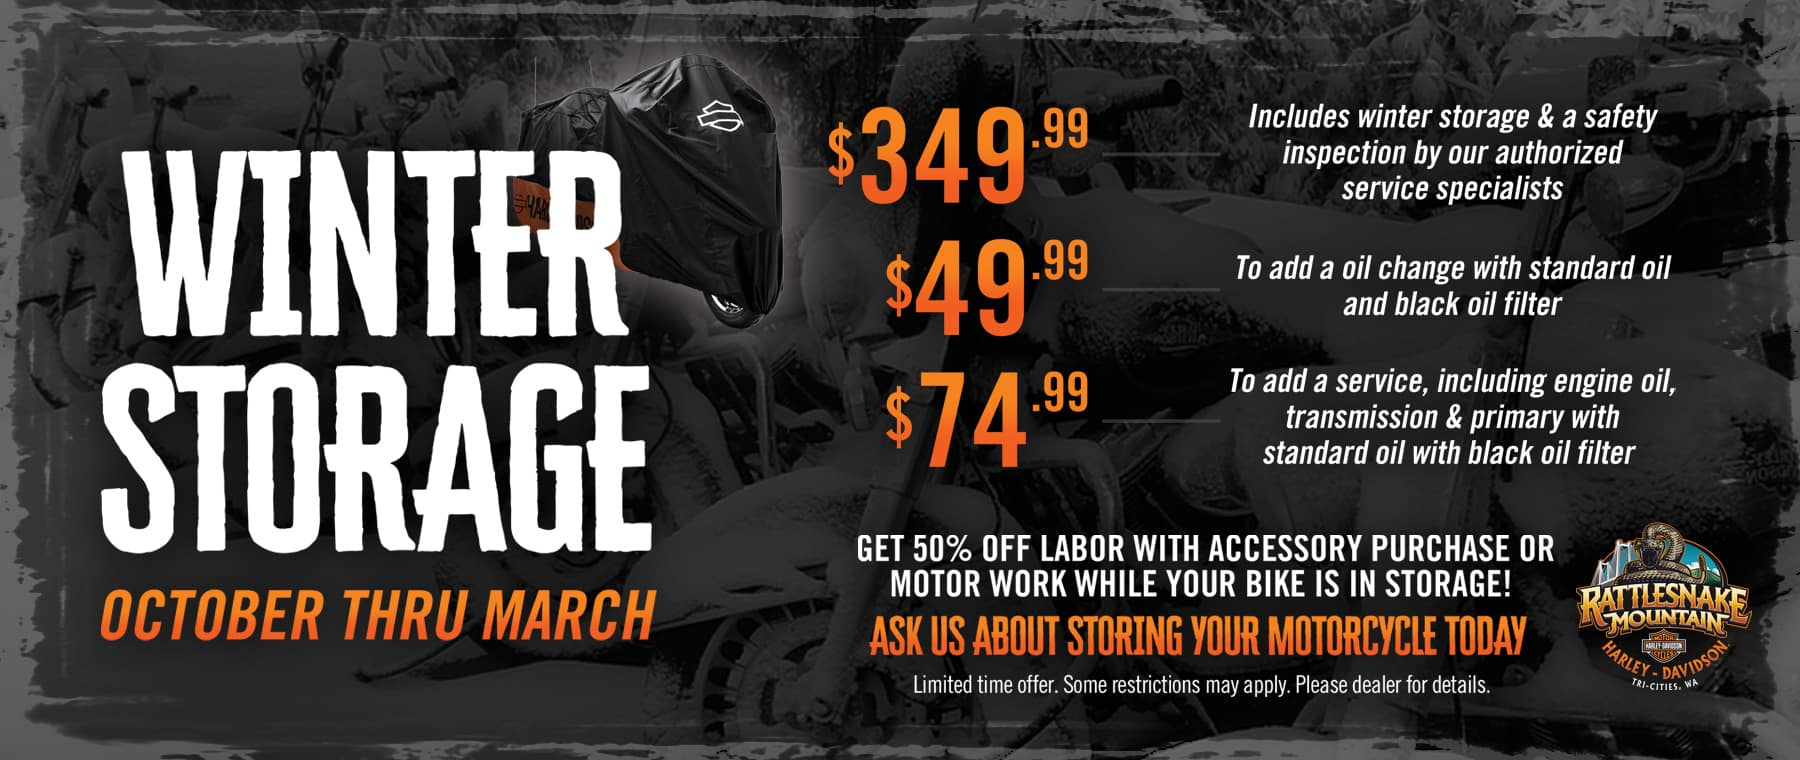 Get 50% off labor with accessory purchase or motor work while your bike is in storage!